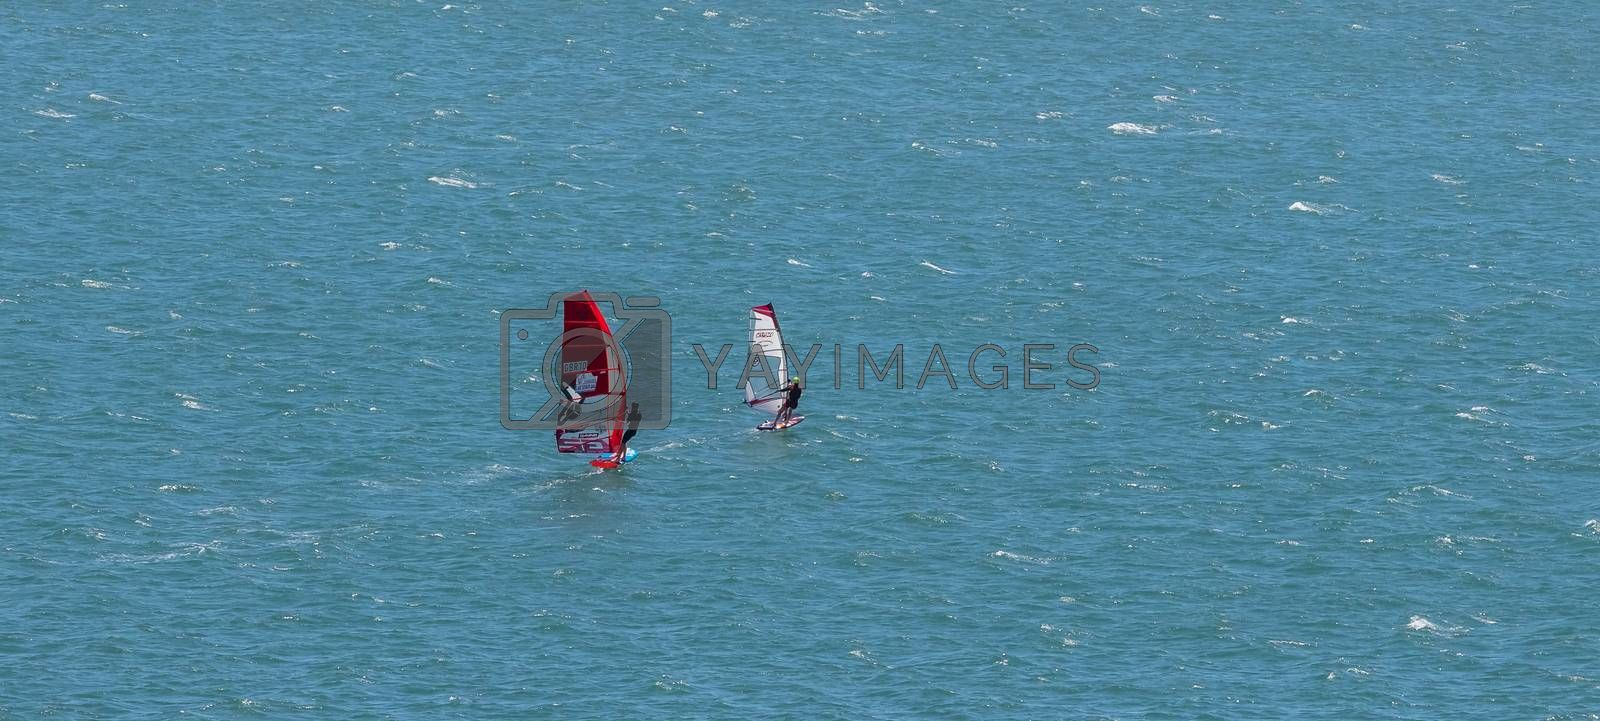 Portland harbour, United Kingdom - July 2, 2020: High Angle aerial panoramic shot of two sail boards with professional surfers on them racing in Portland harbour.